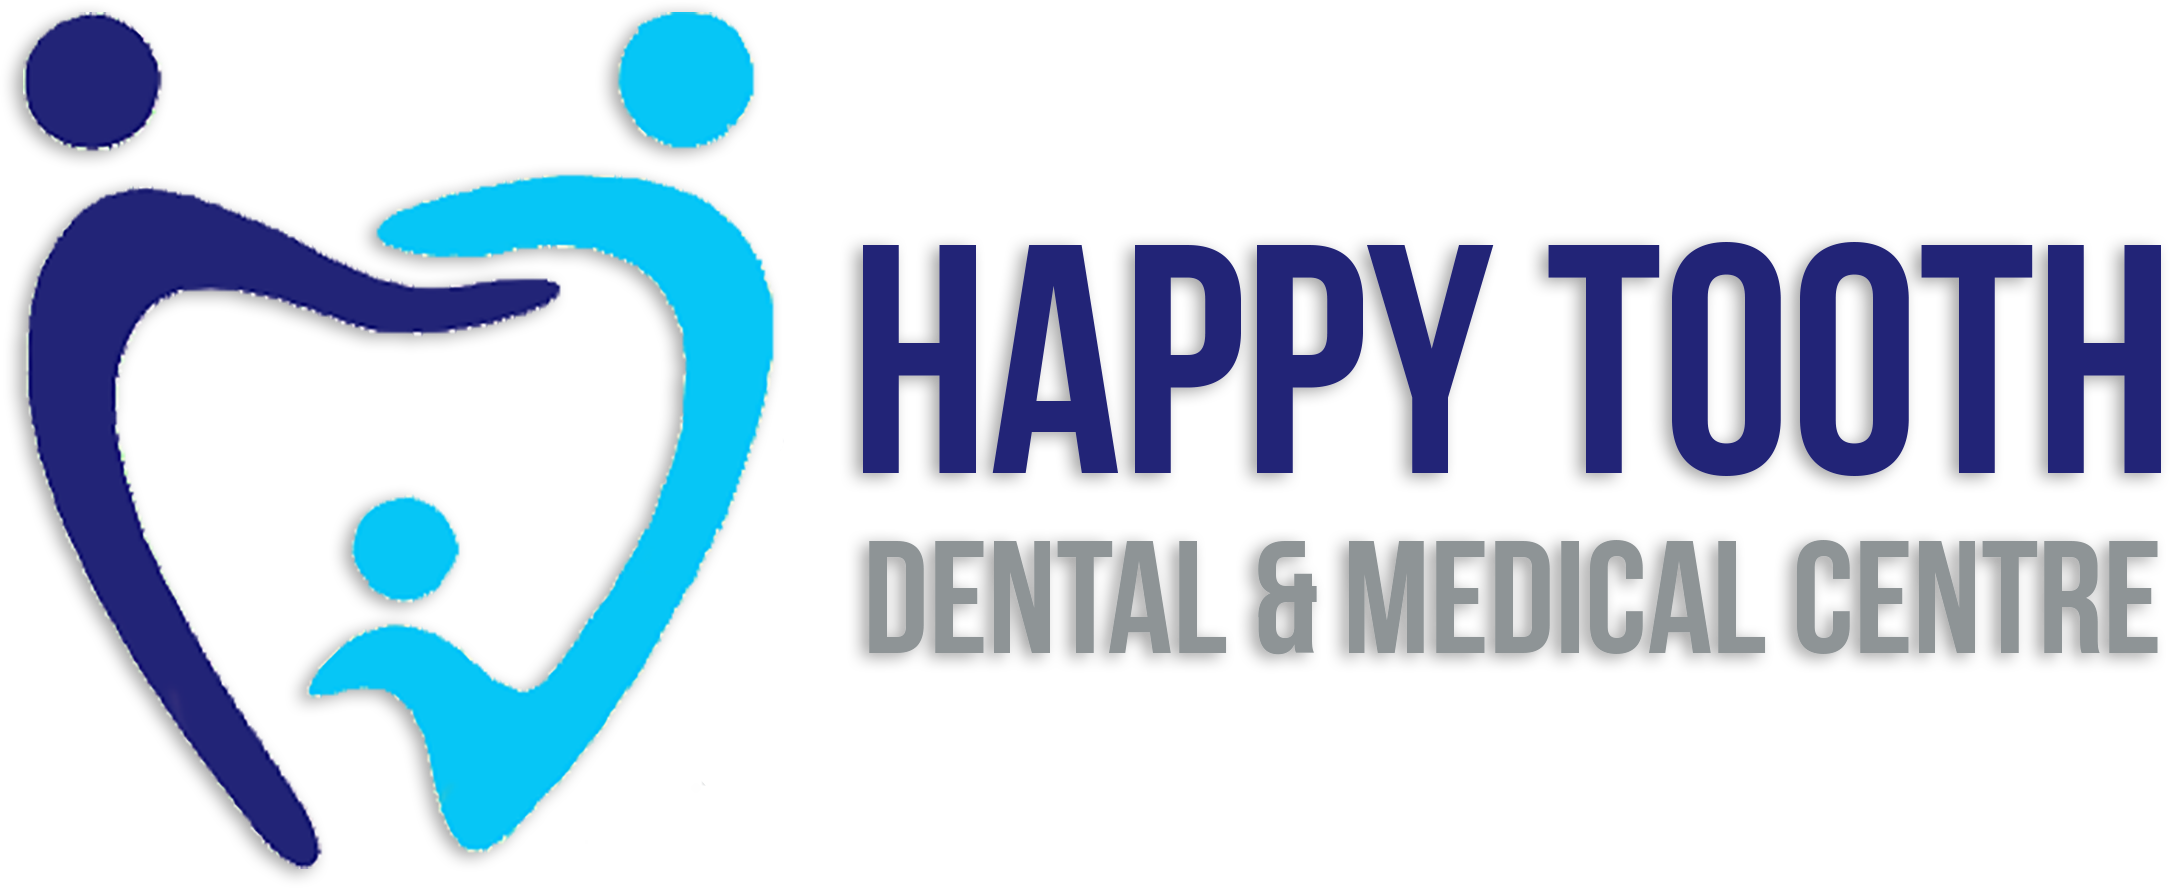 Happy Tooth Dental & Medical Centre